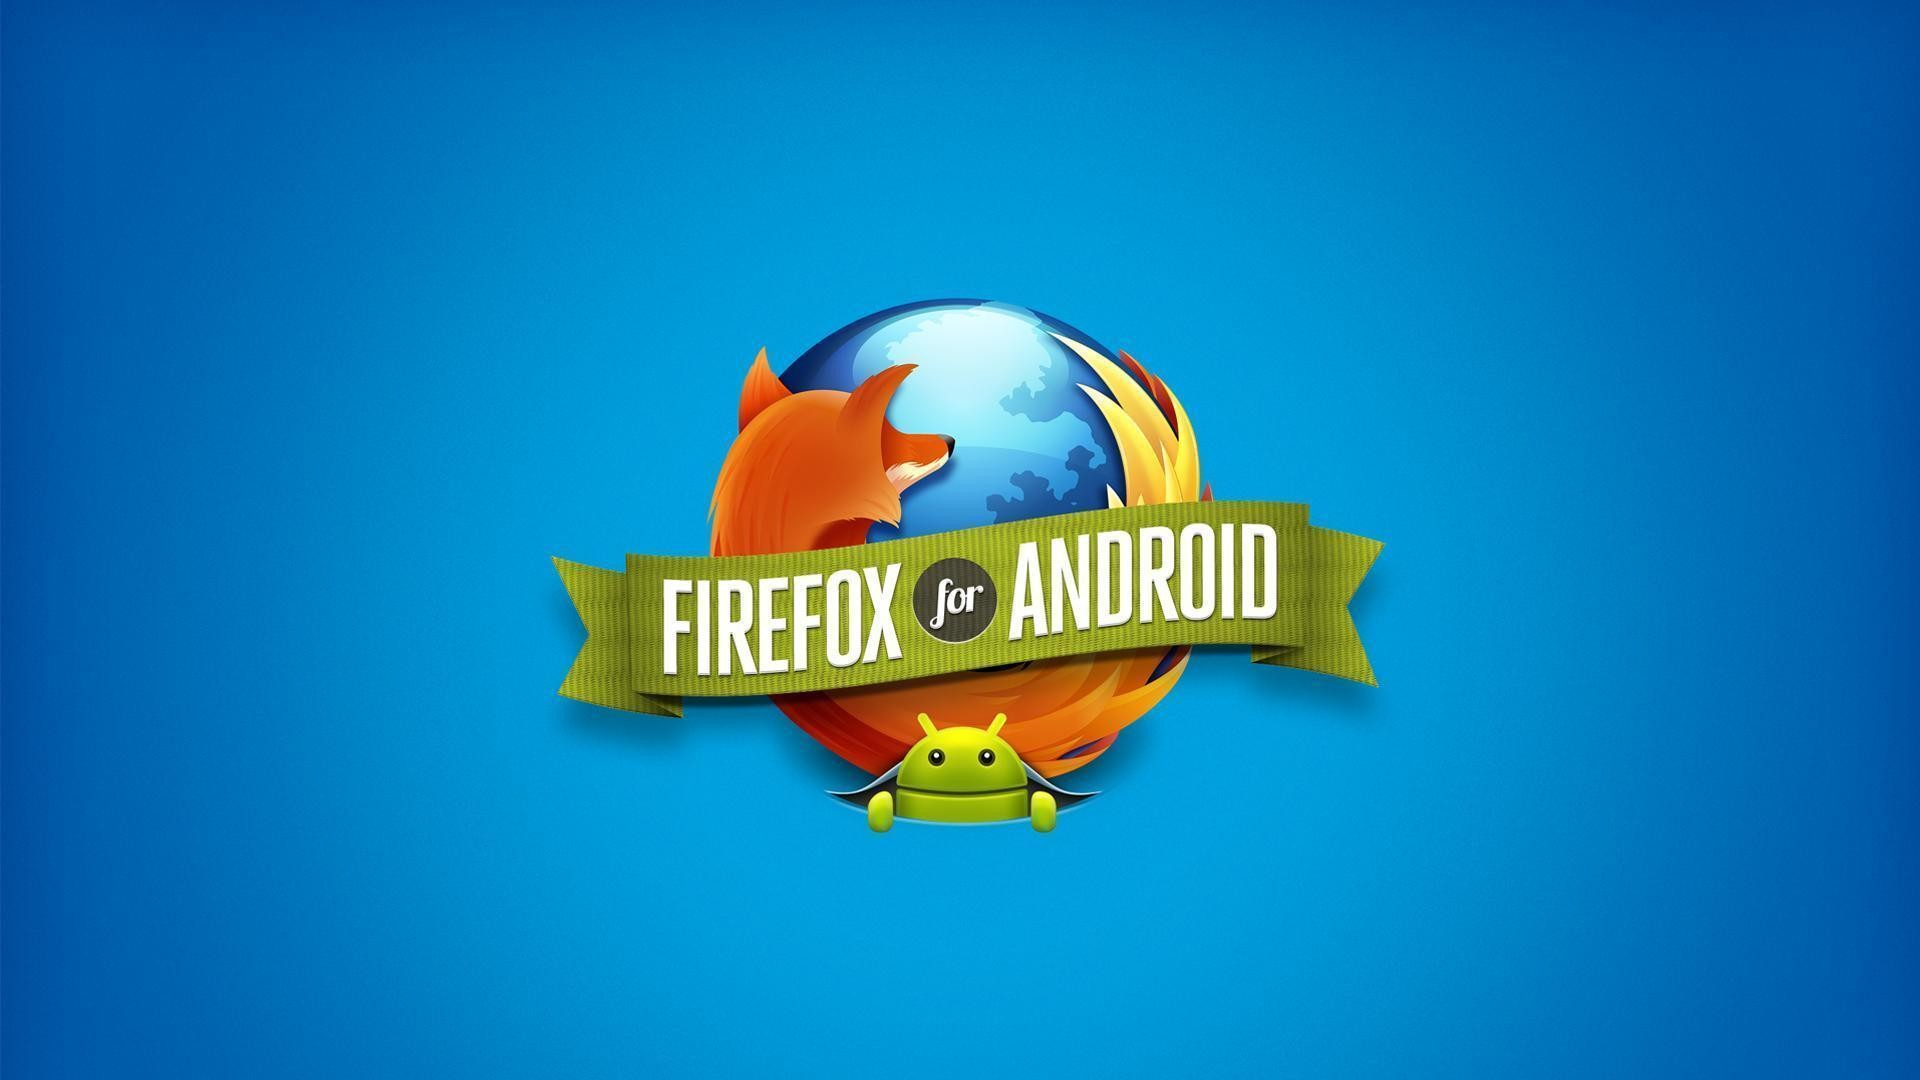 1920x1080 Mozilla Firefox Wallpaper Themes For Android #3378 Wallpaper .